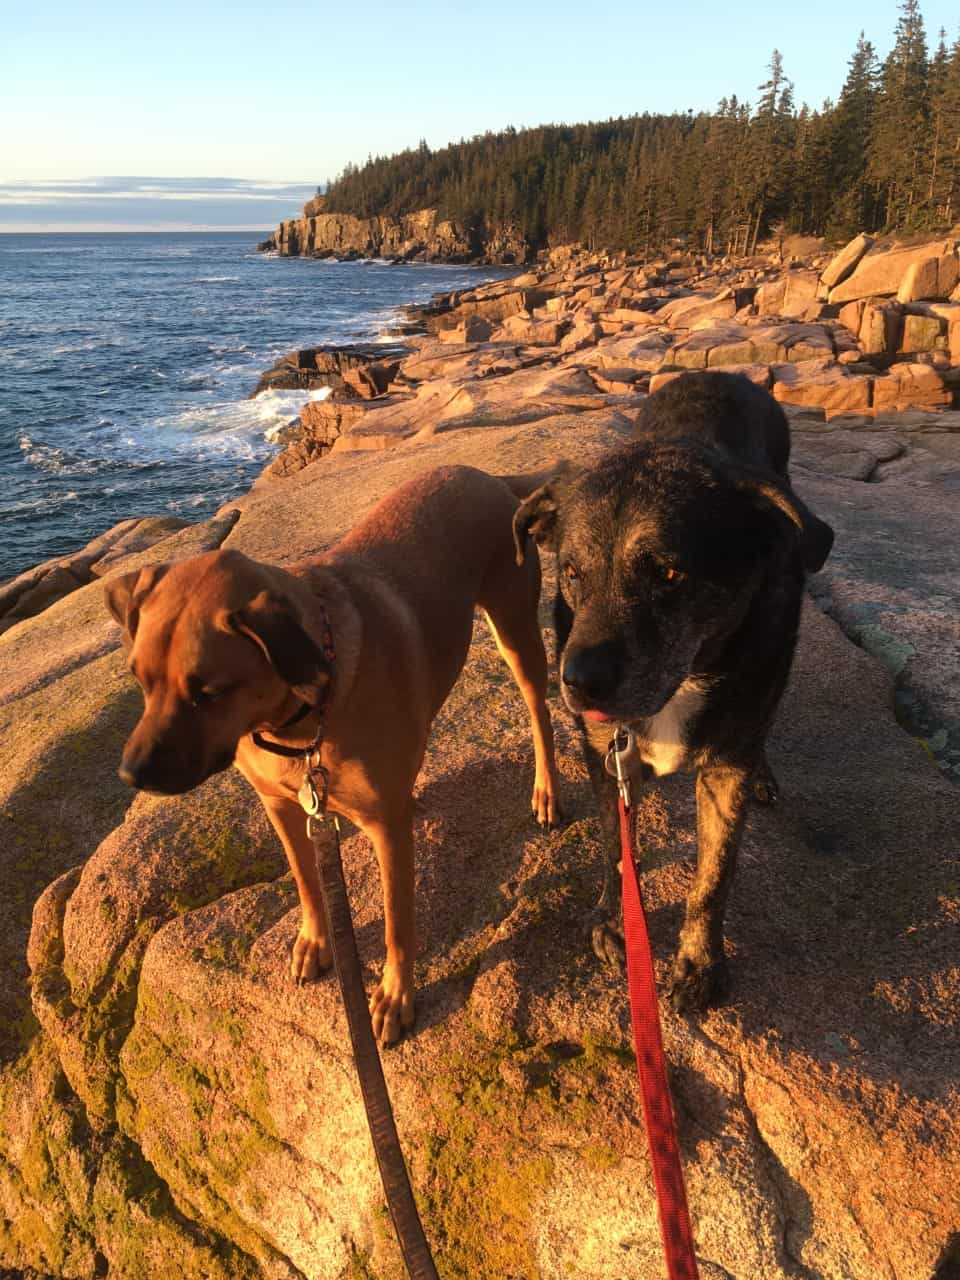 Dogs in New England on the coast at pet friendly Acadia National Park, Maine